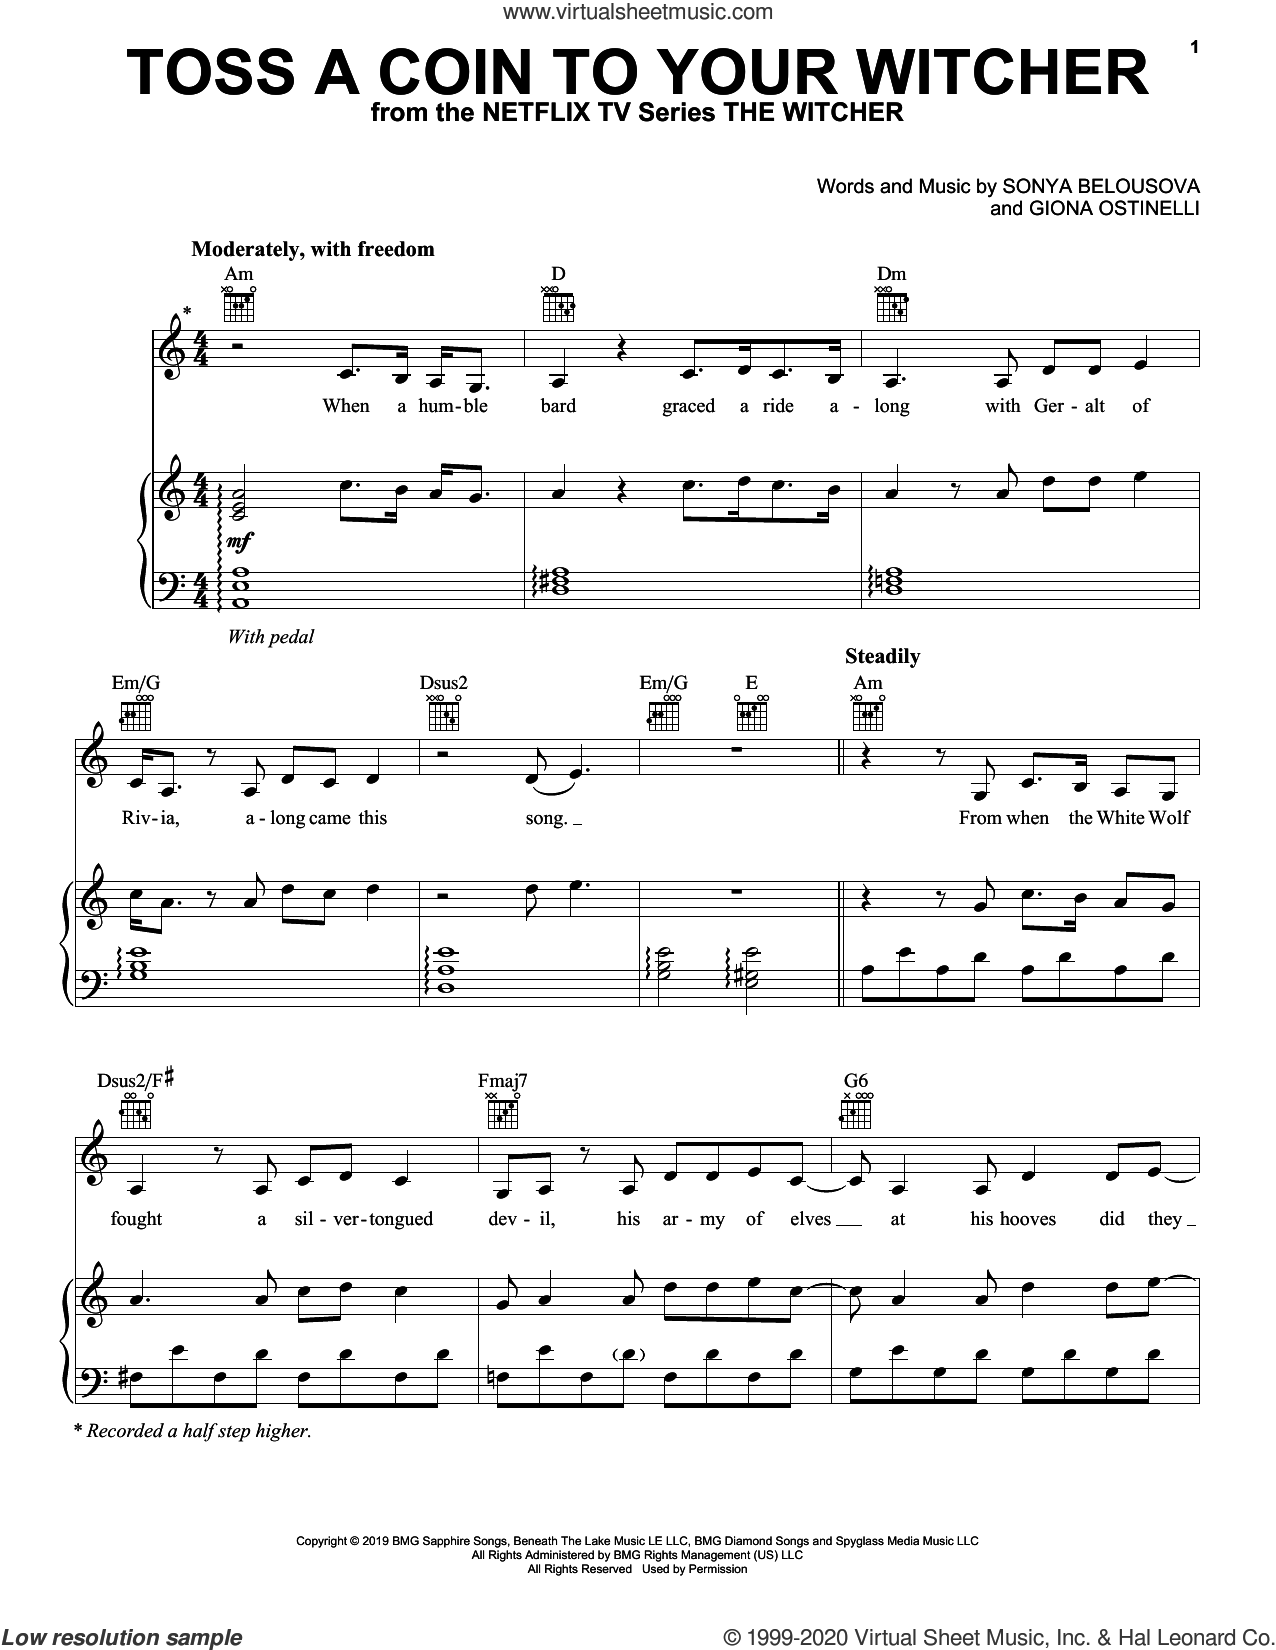 Toss A Coin To Your Witcher (from The Witcher) sheet music for voice, piano or guitar by Joey Batey, Giona Ostinelli and Sonya Belousova, intermediate skill level